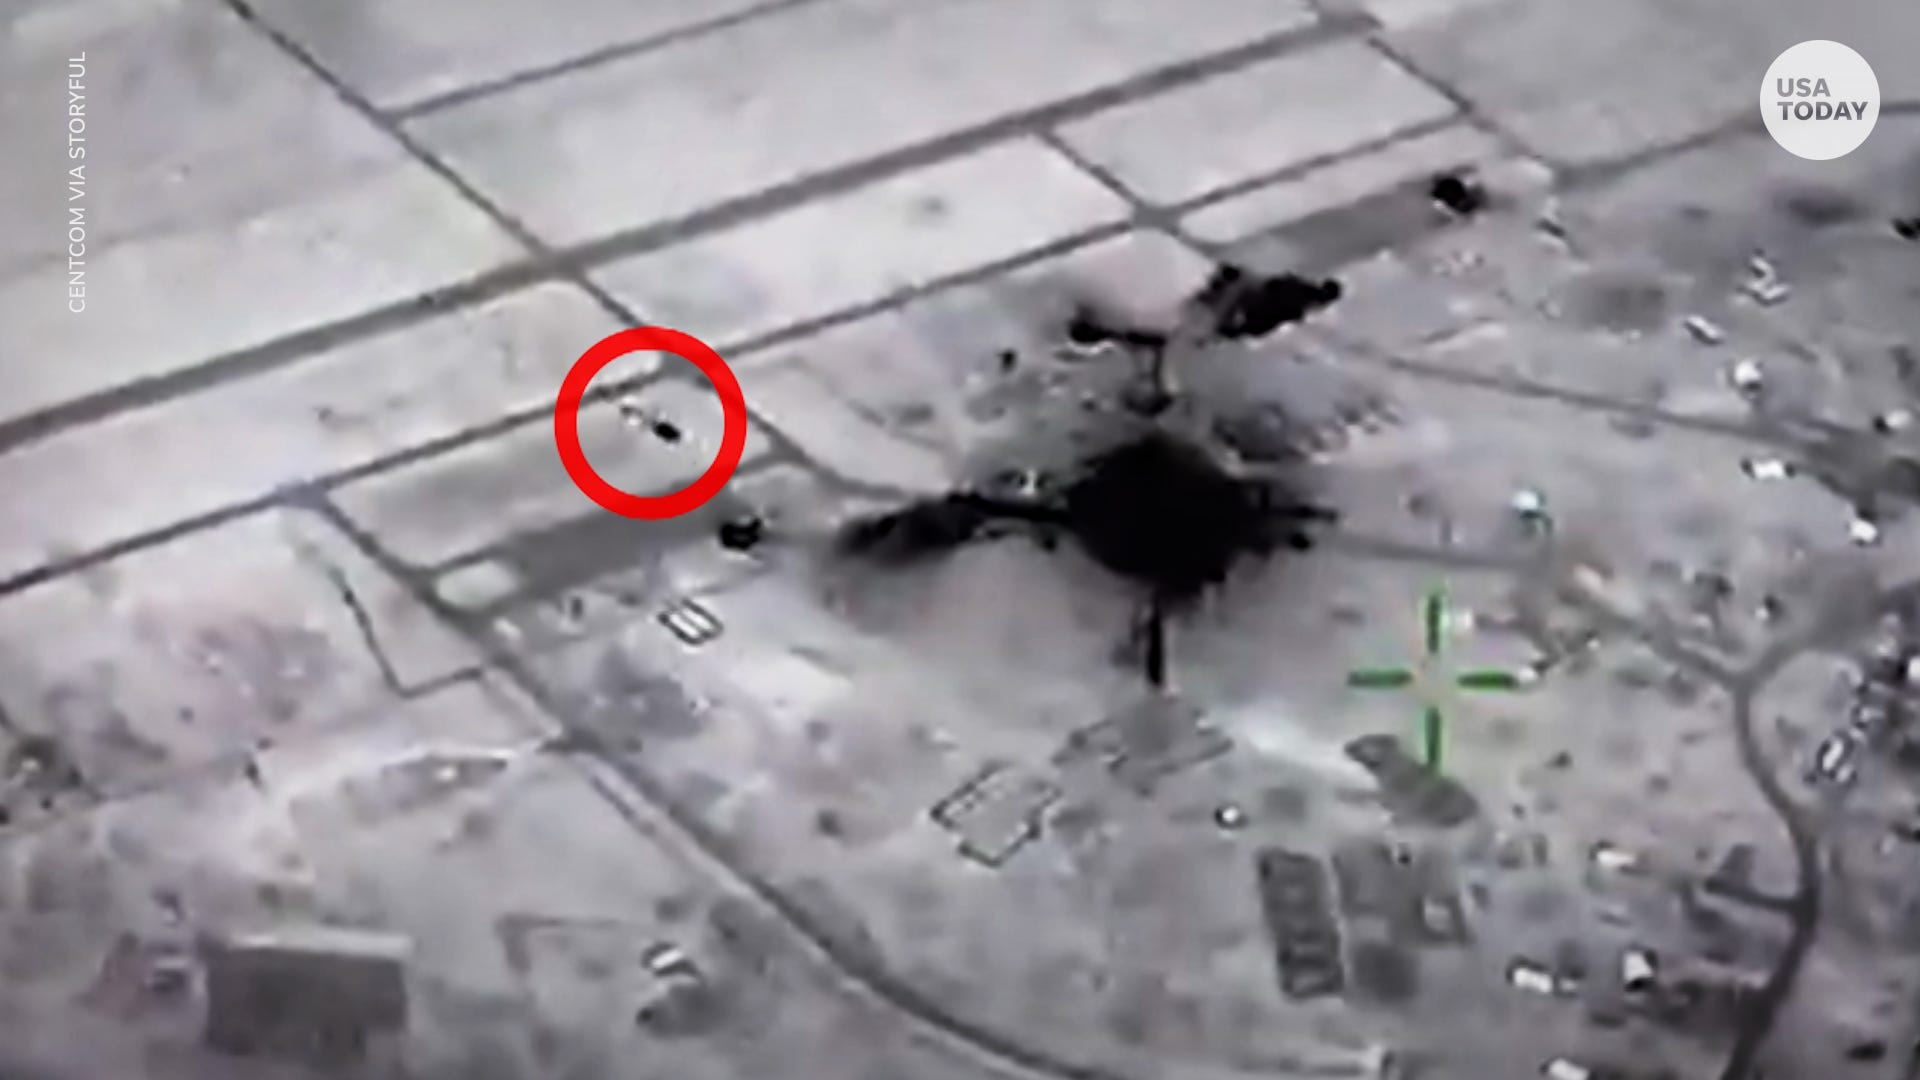 Drone shows moment Iranian missiles attacked US forces based in Iraq